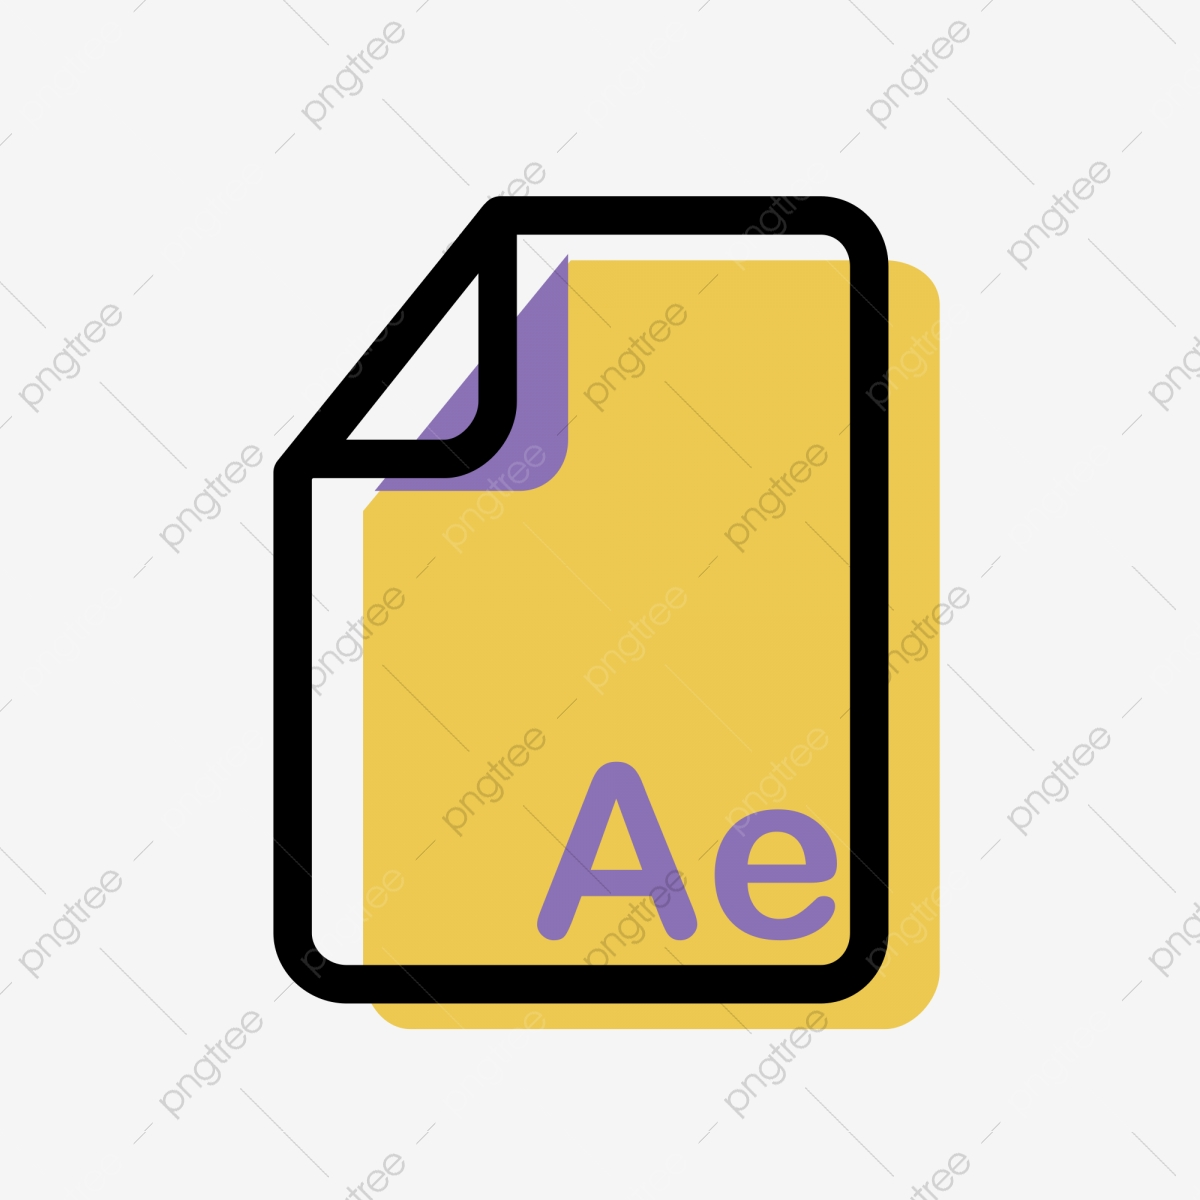 Cartoon Software Icon Free Clipart Software Icons Cartoon Icons Ae Format File Png Transparent Clipart Image And Psd File For Free Download